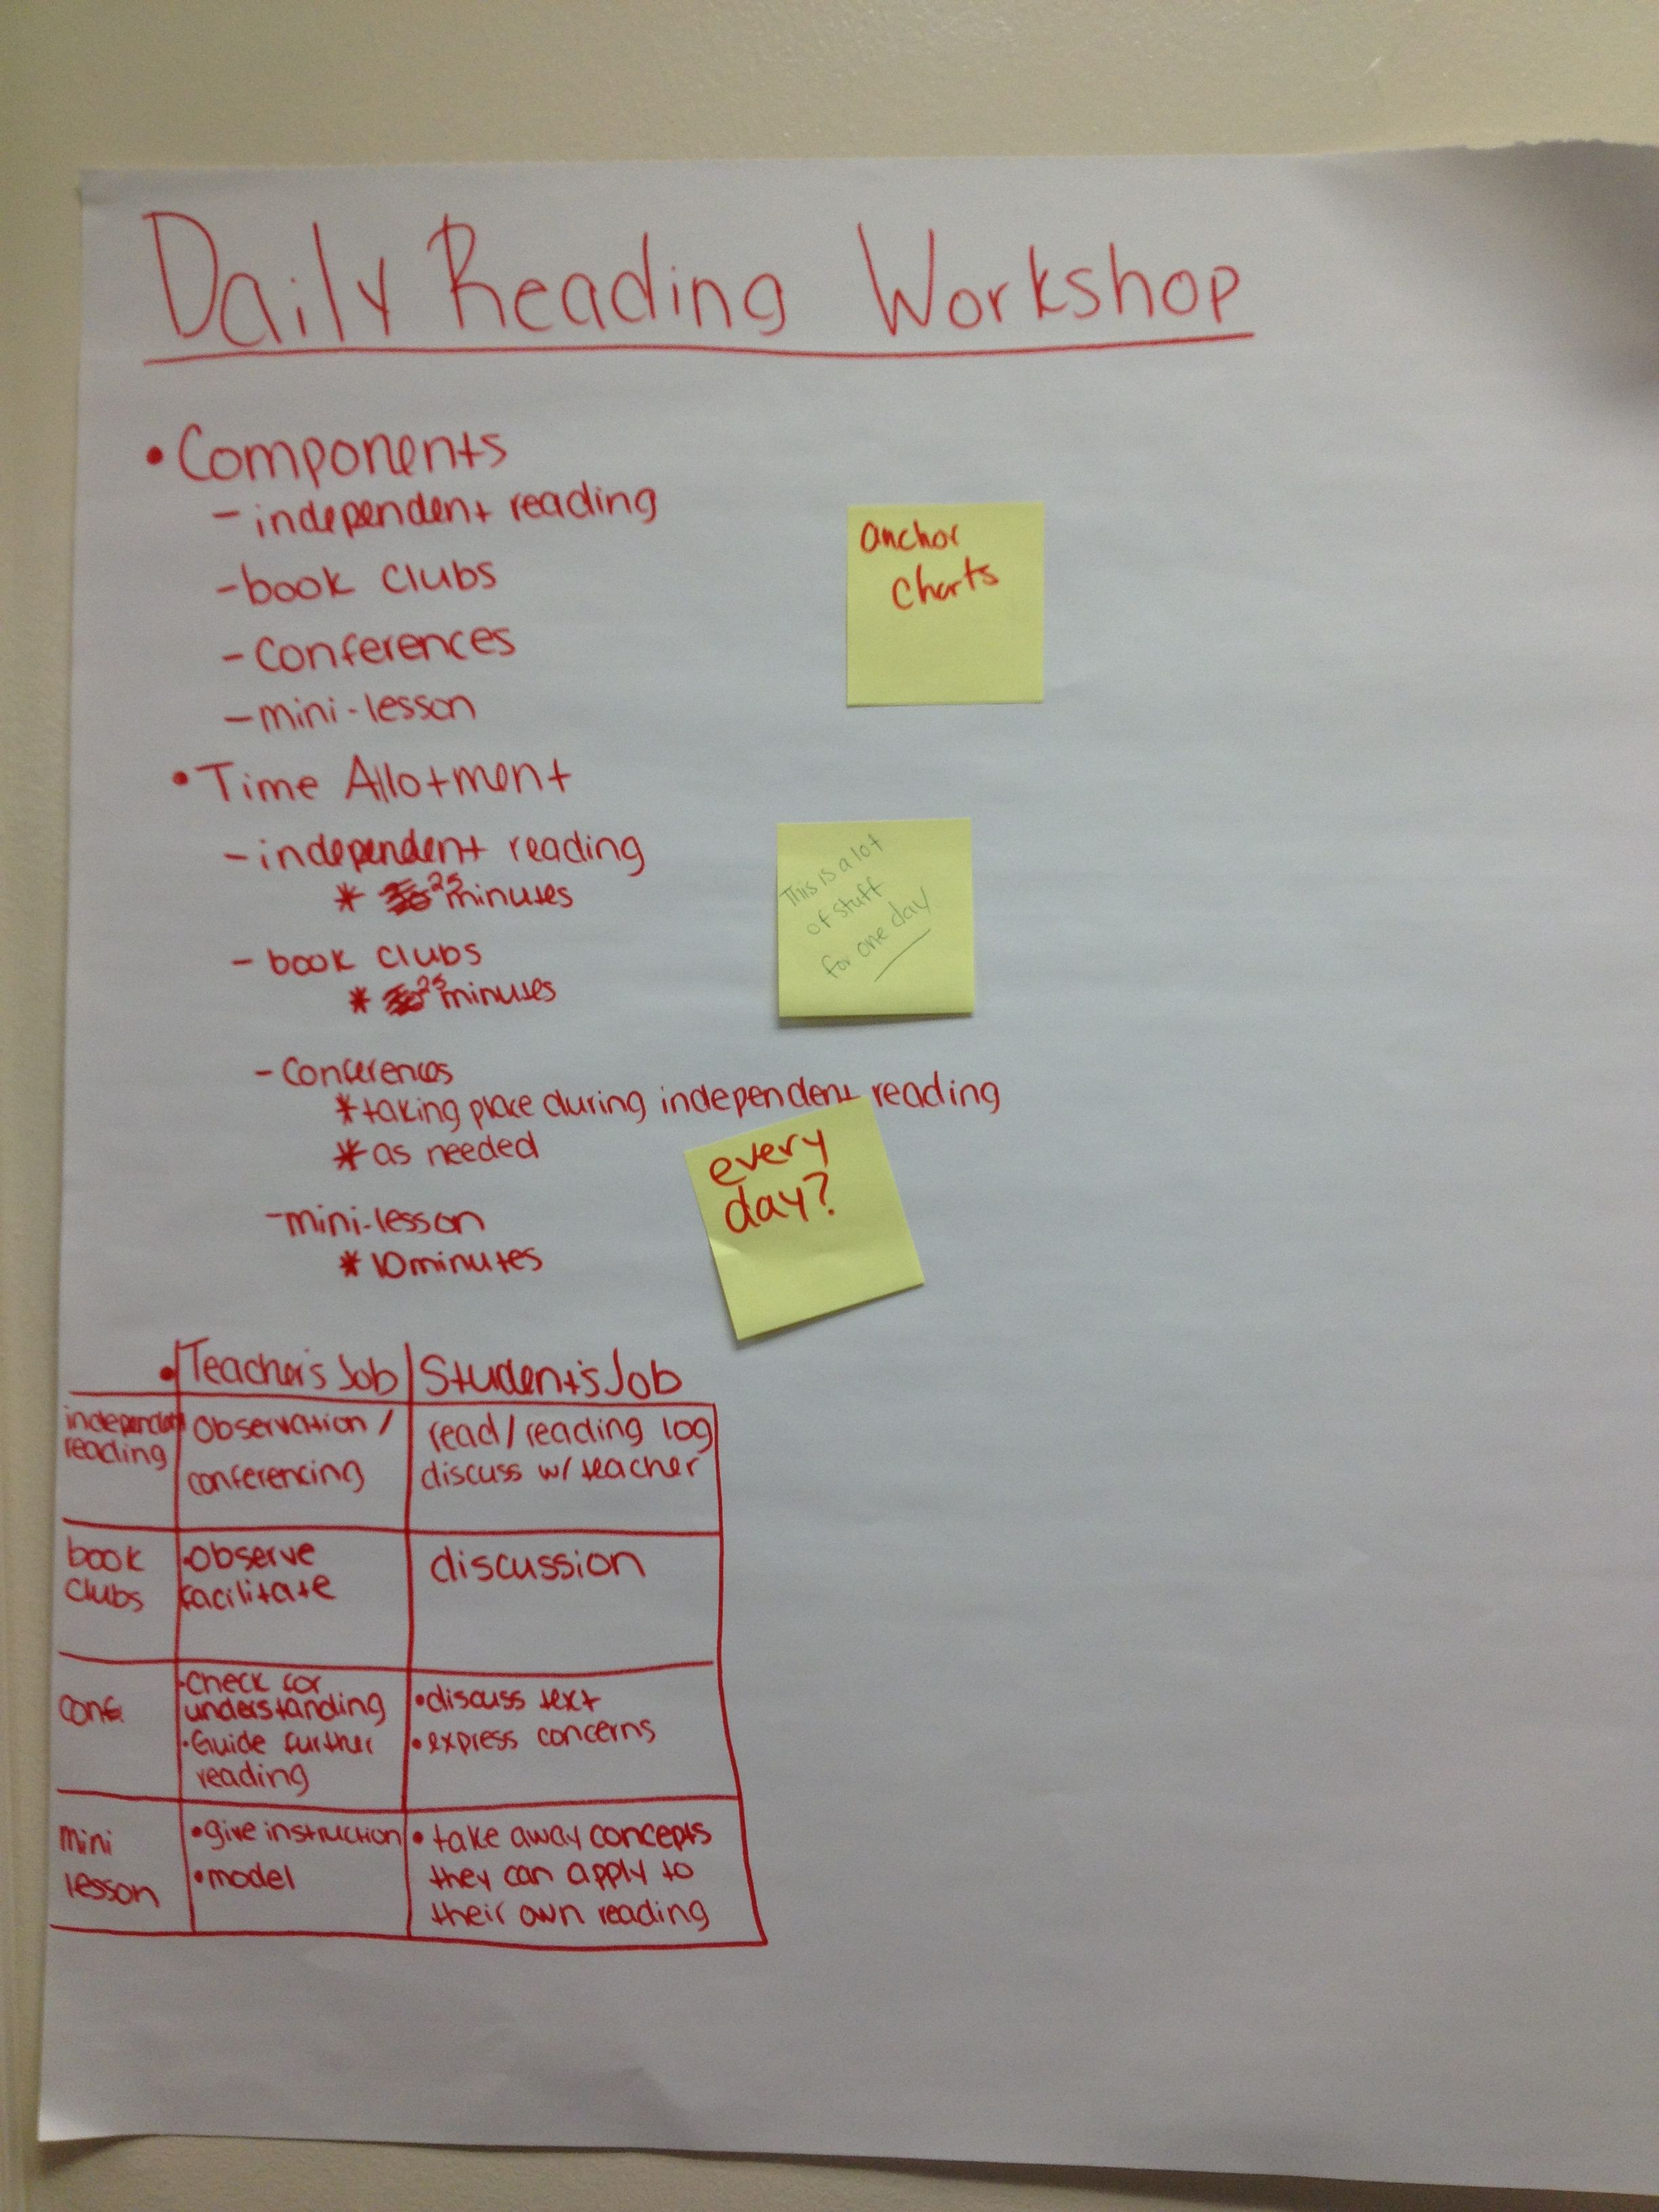 Scheduling a daily reading workshop